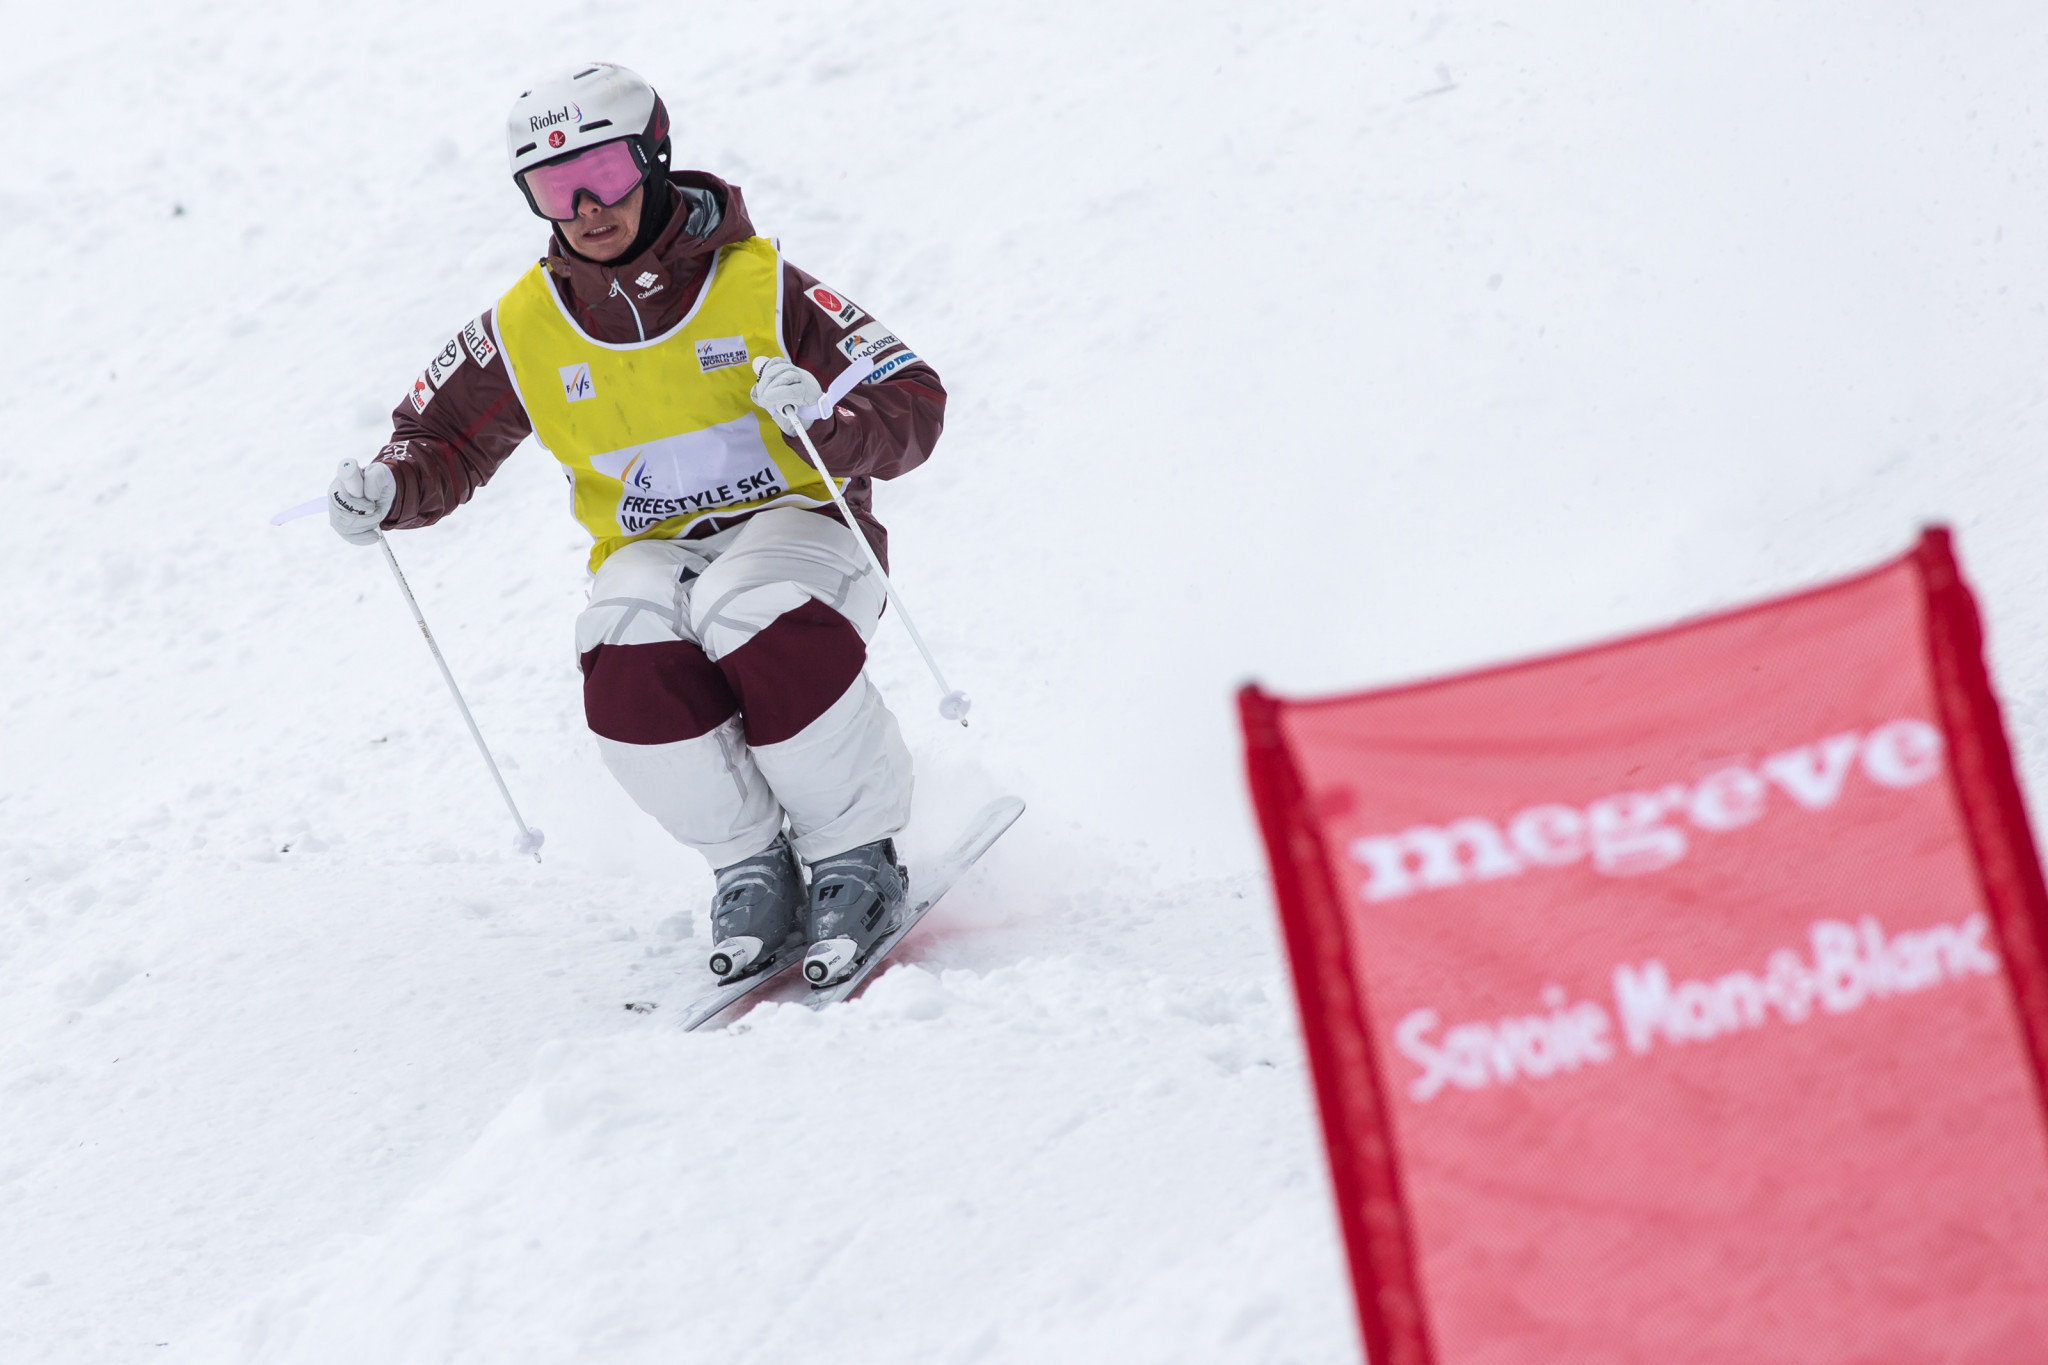 Kingsbury and Laffont look to maintain dominance as Moguls World Cup heads to China